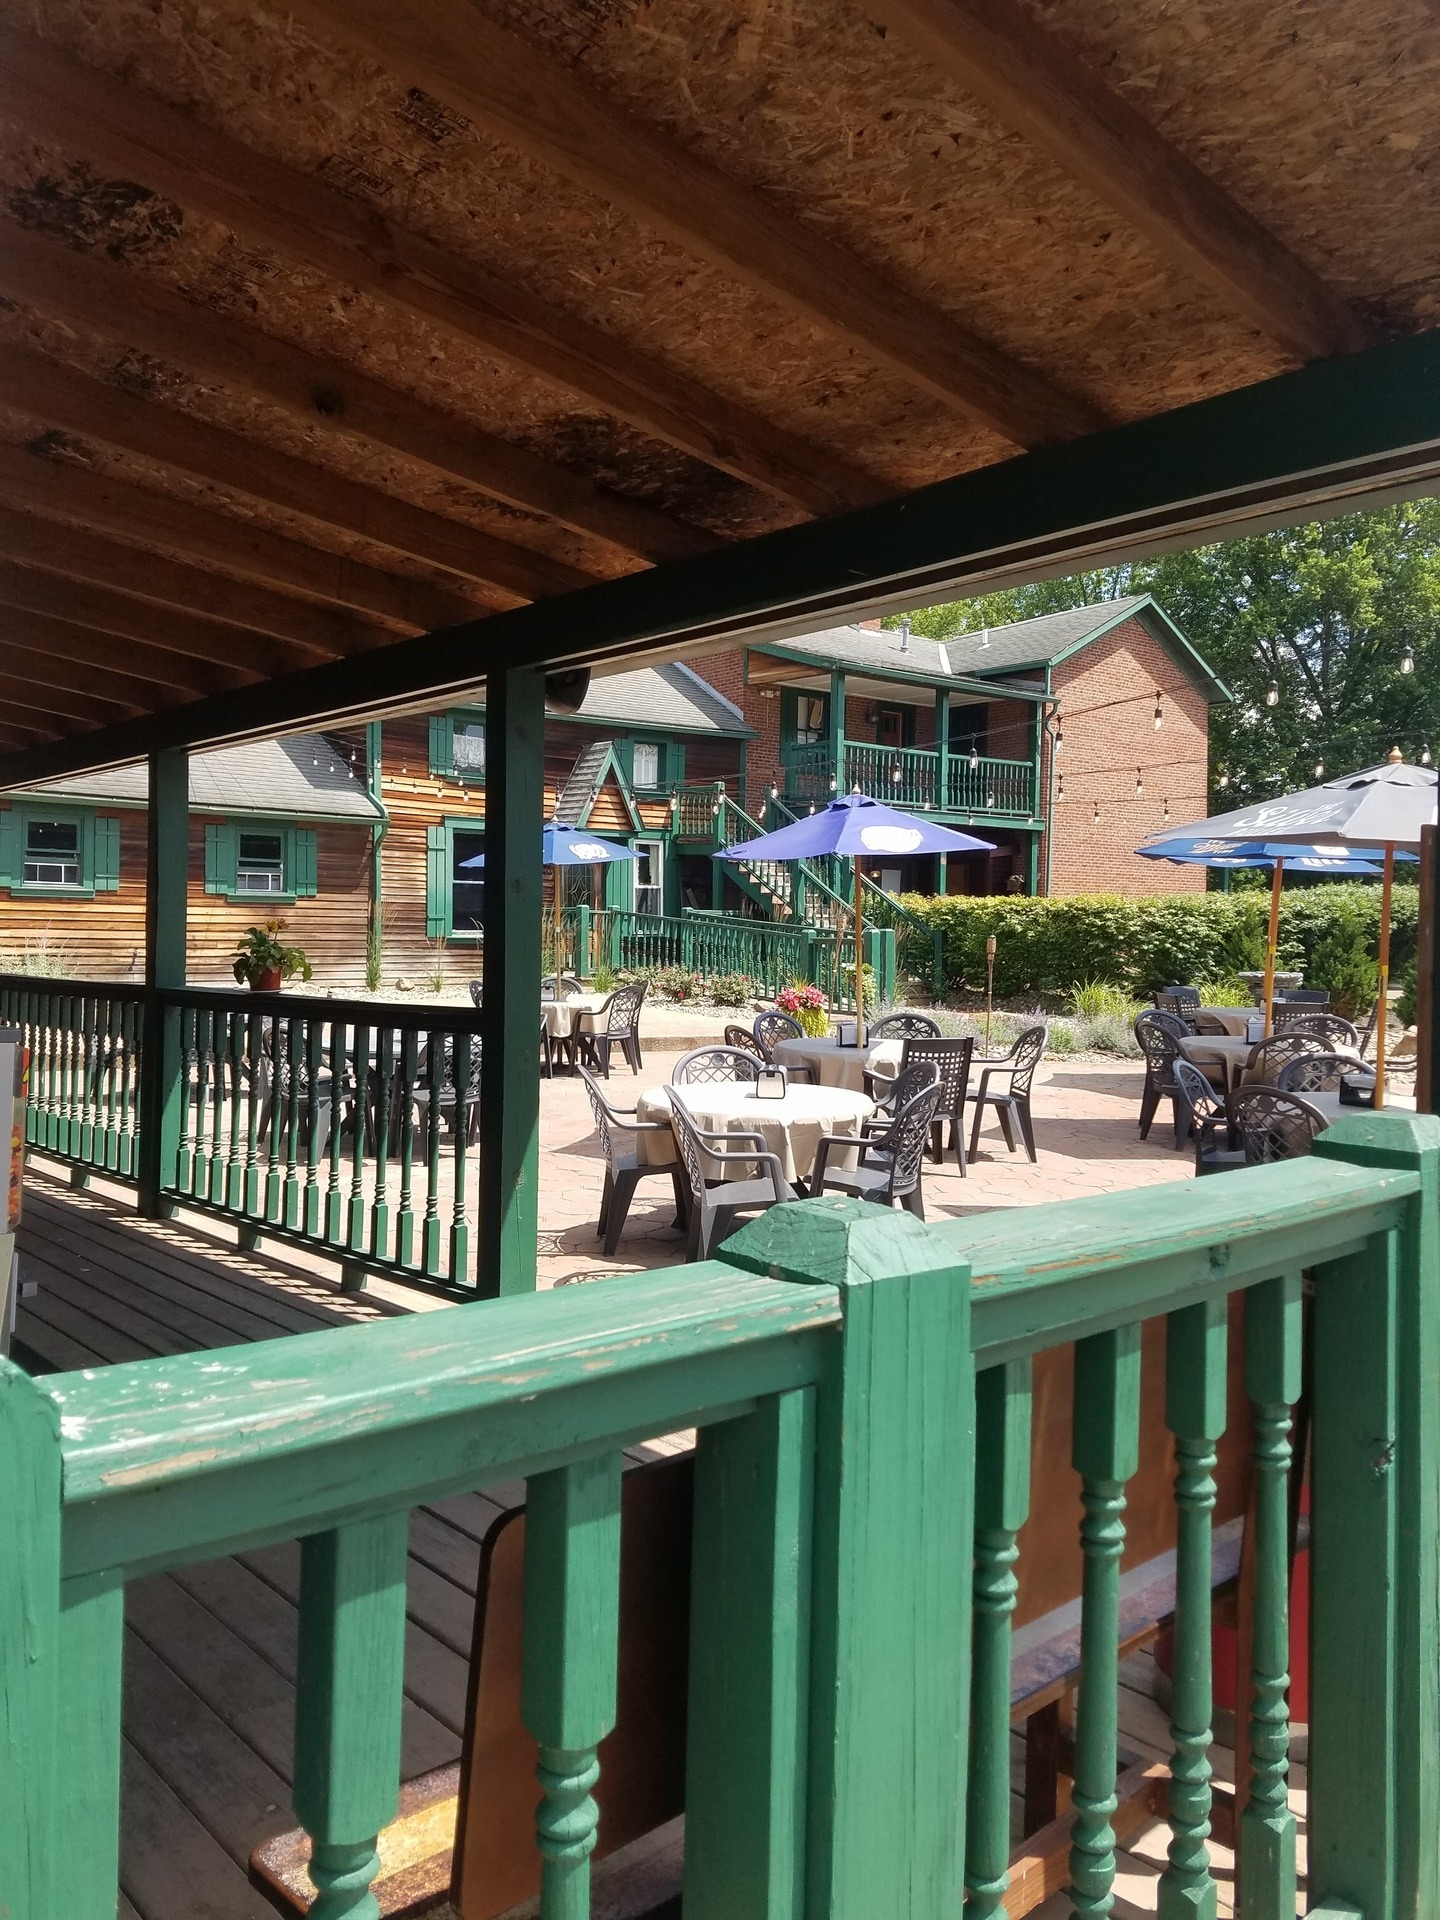 Outdoor dining available during the warmer months.